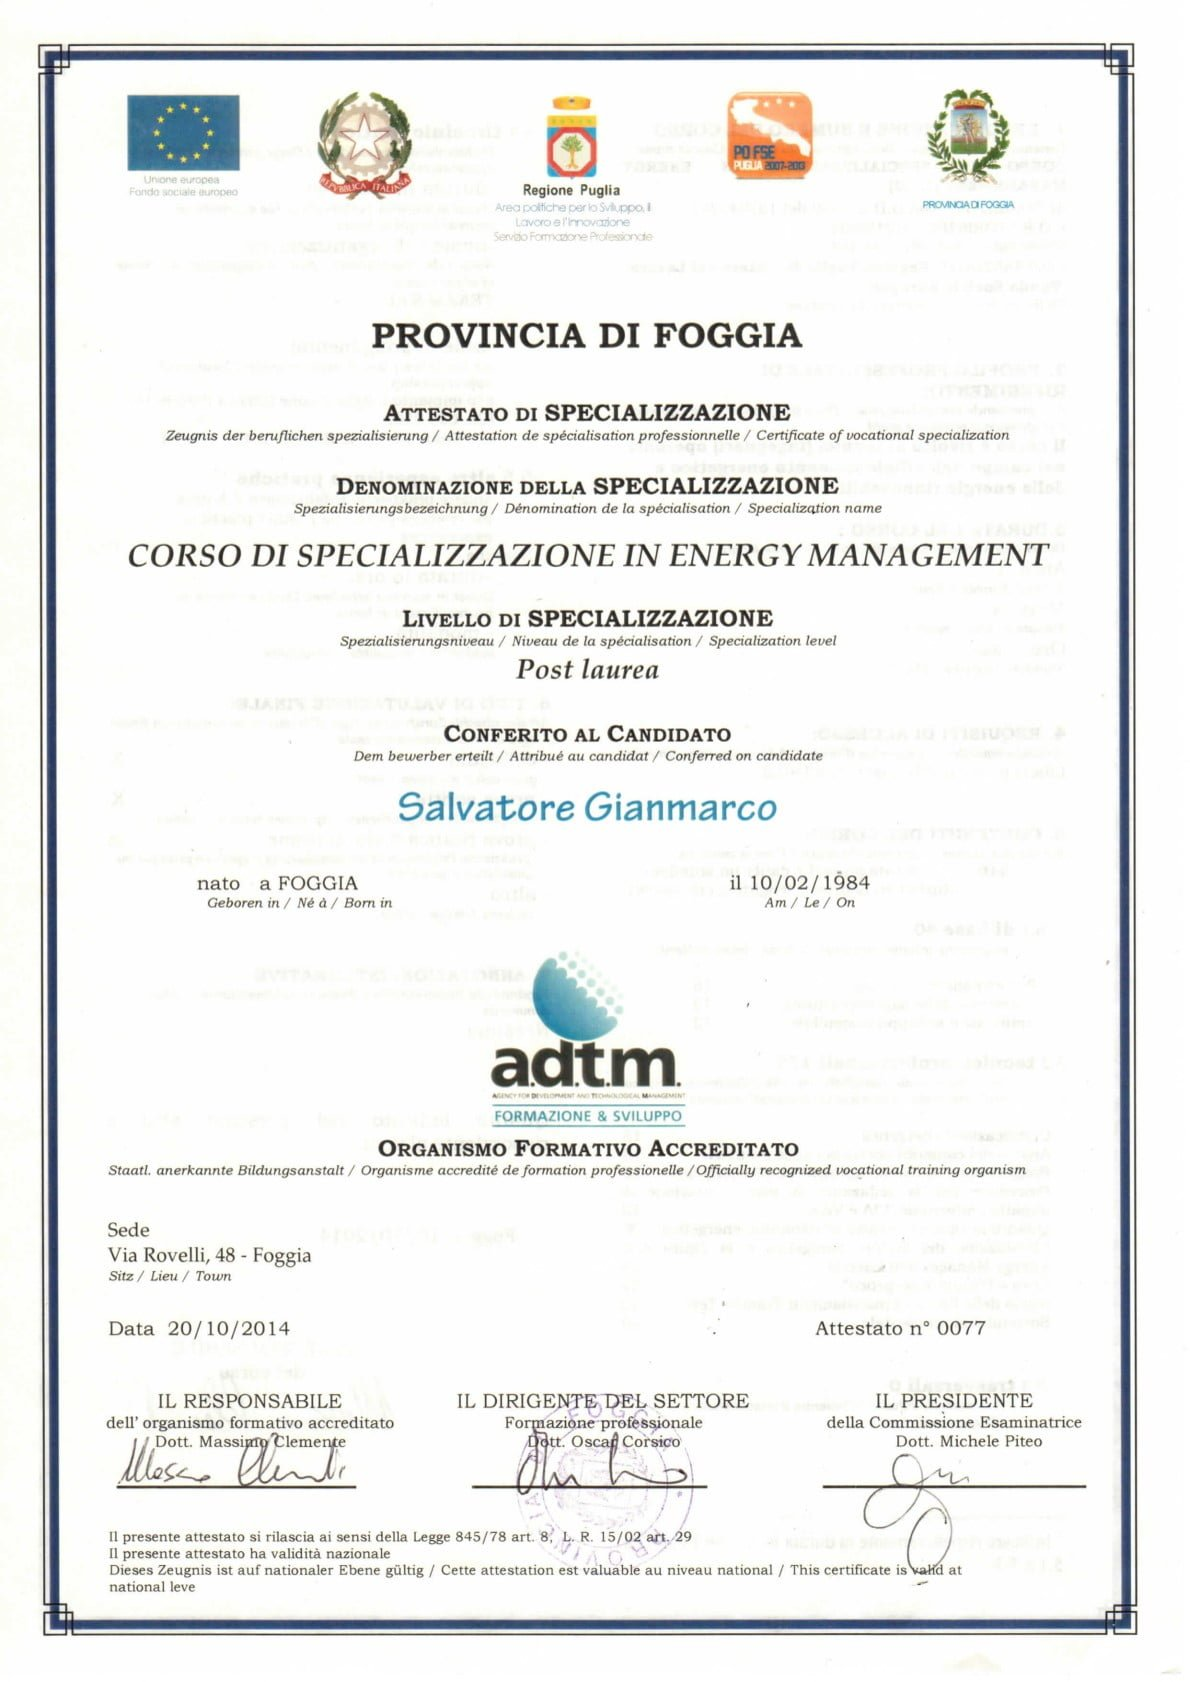 Specializzazione in Energy Management